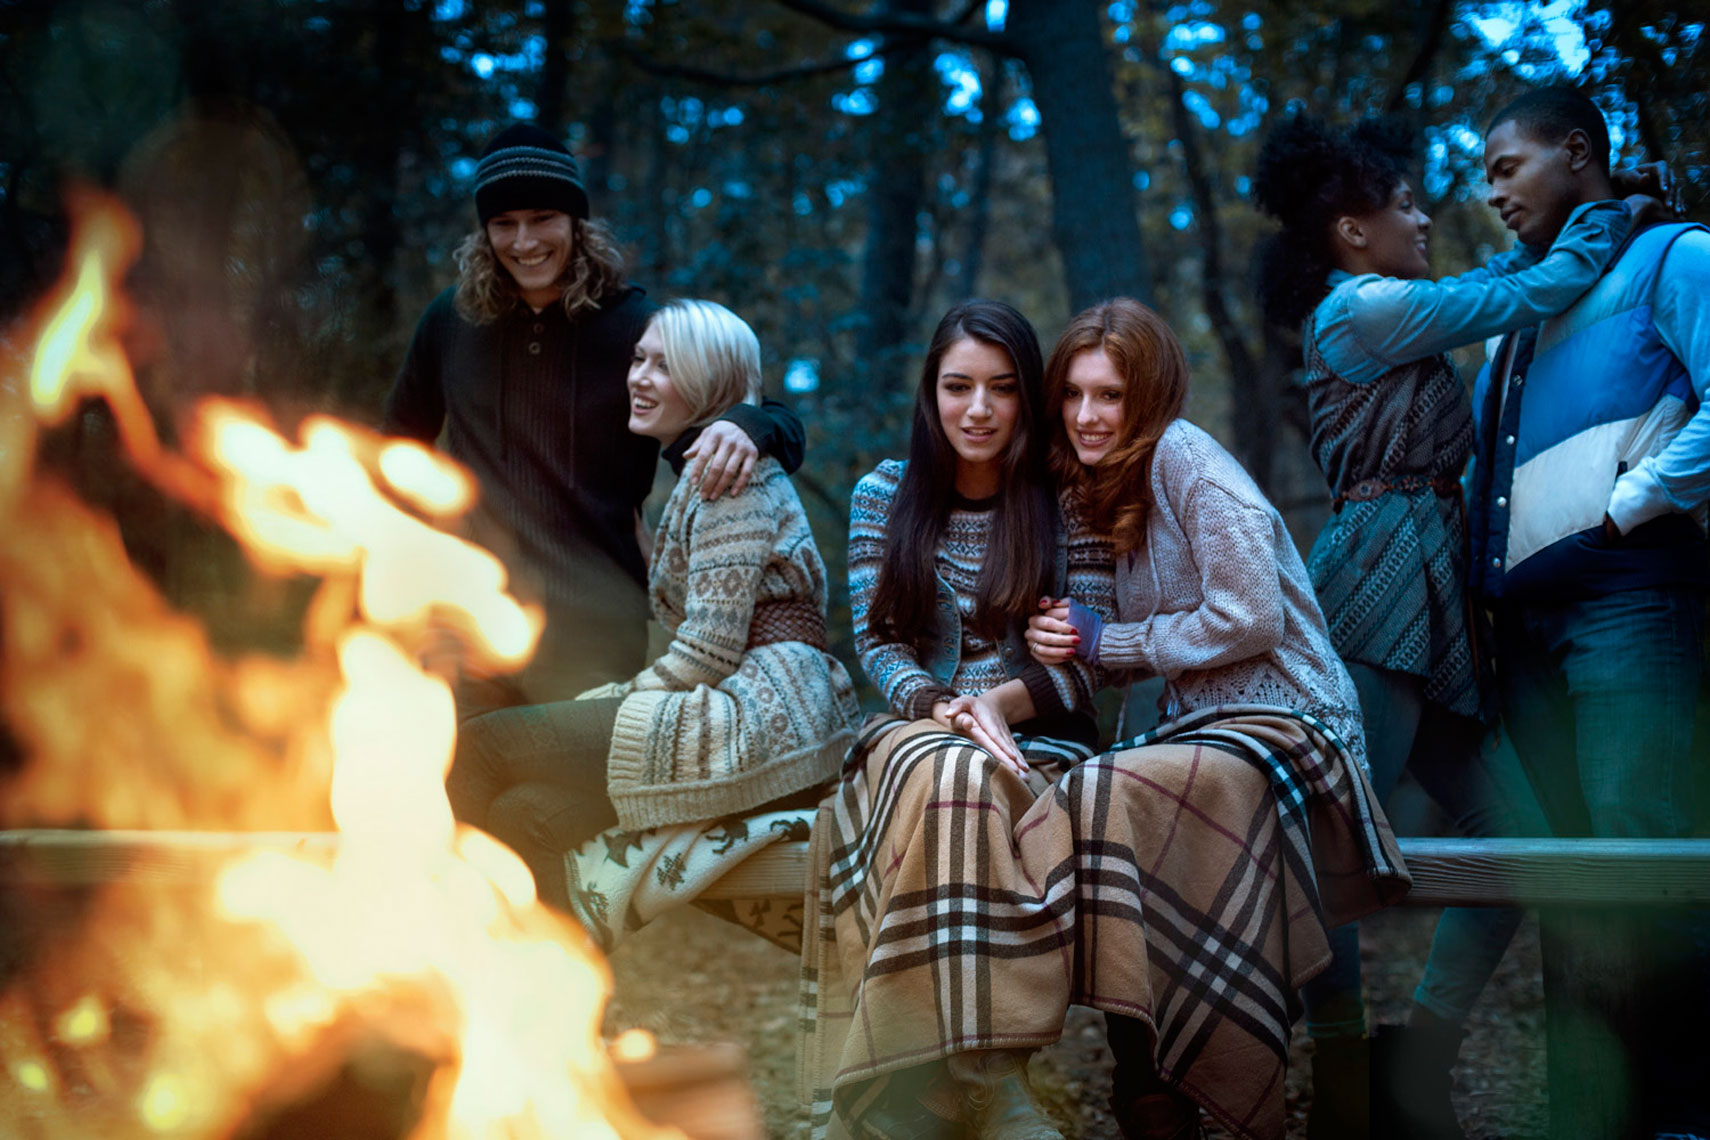 Fall Lifestyle: Young Women Night Portrait: CORBIS